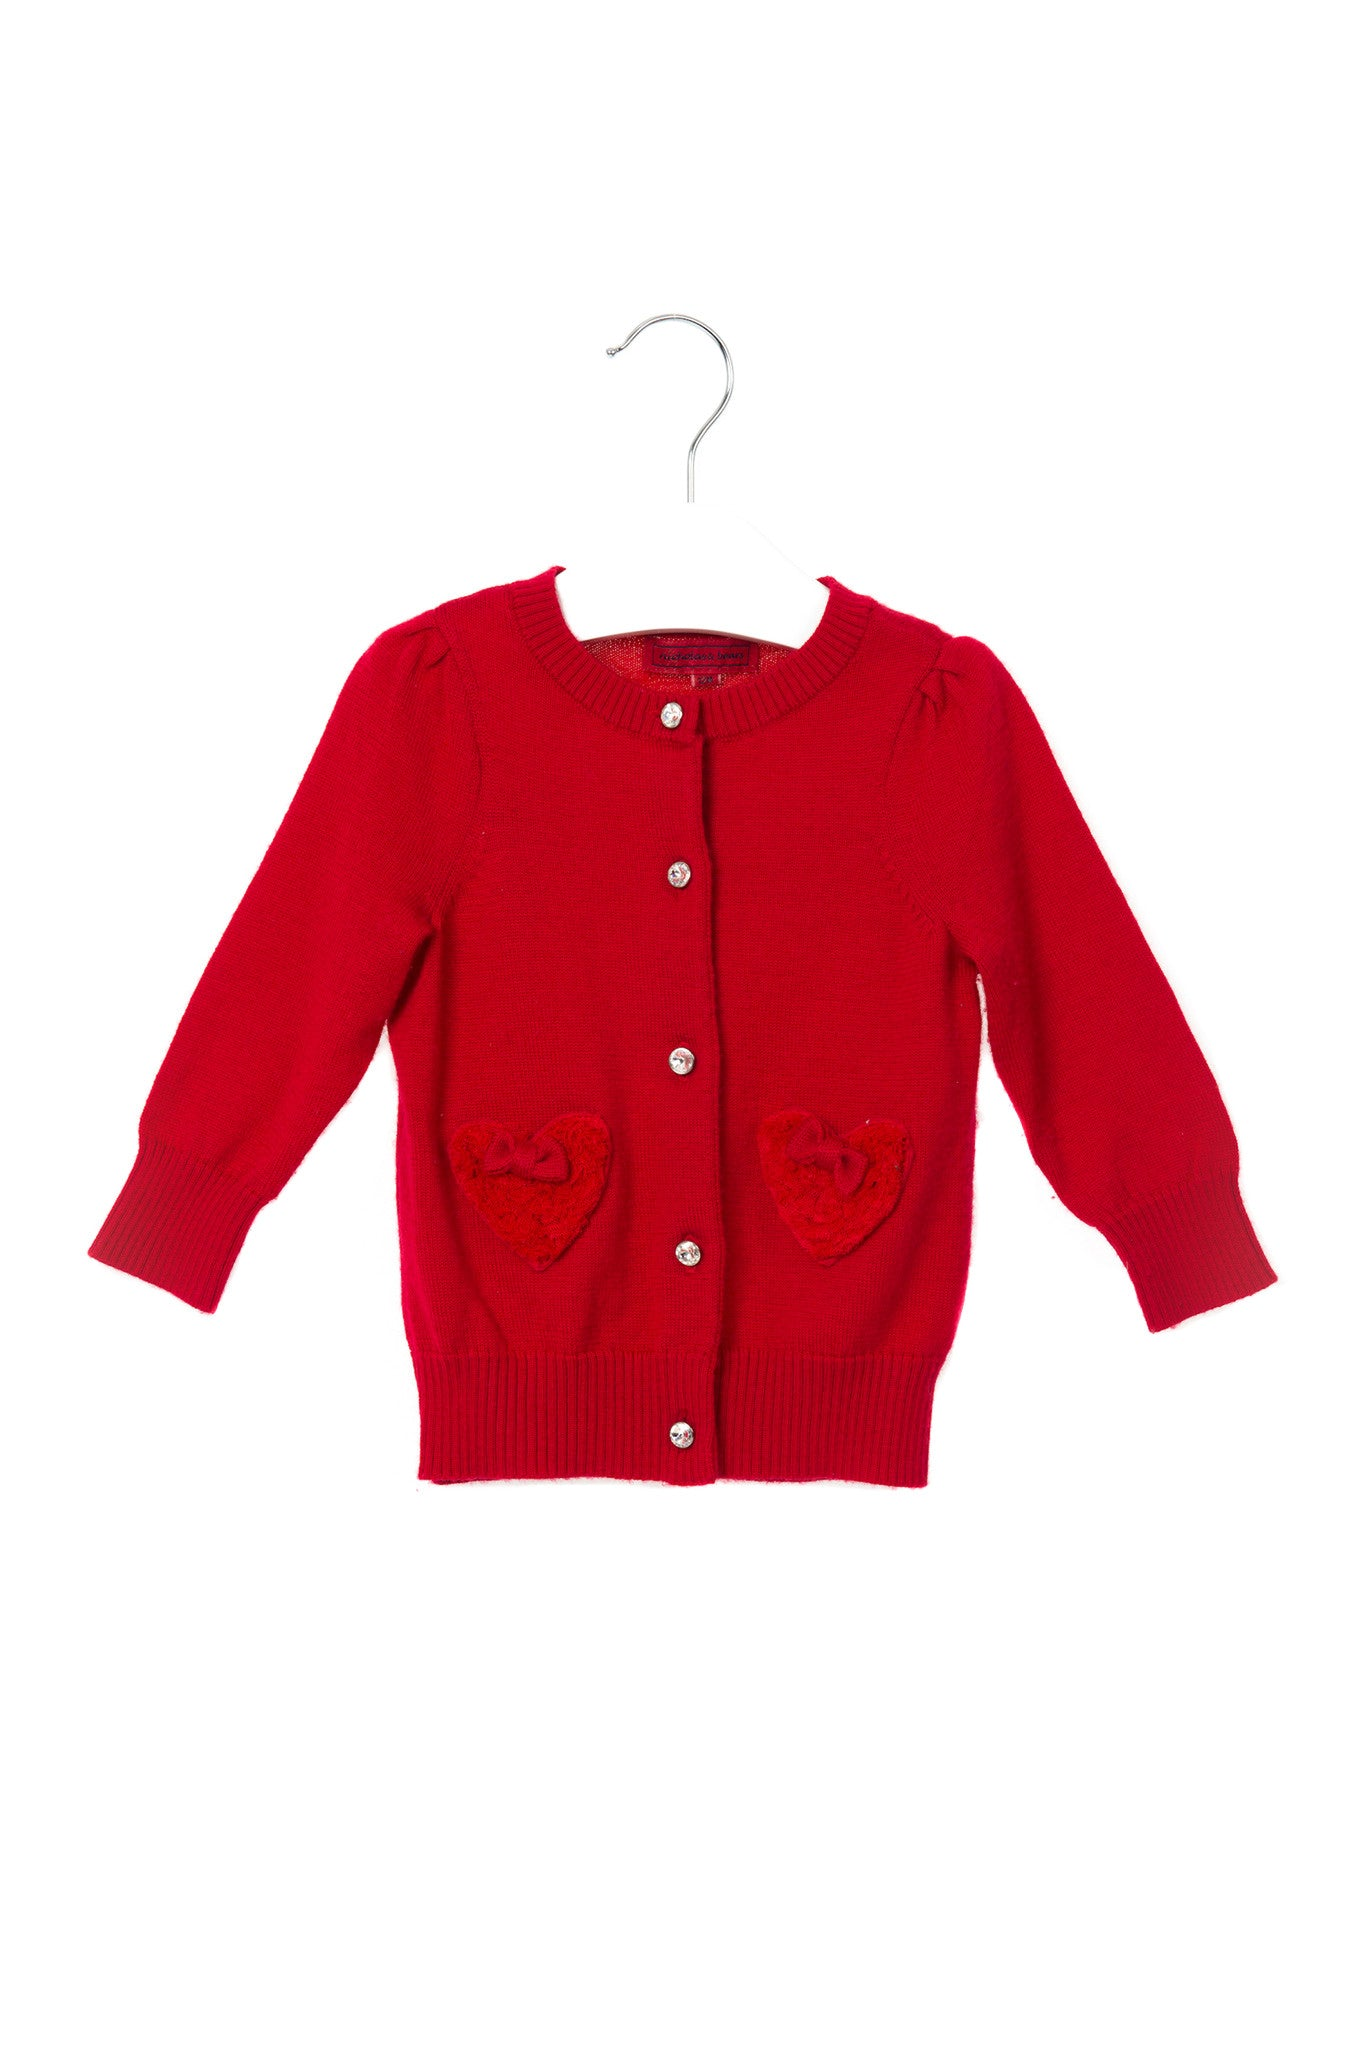 Nicholas & Bears at Retykle | Online Shopping Discount Baby & Kids Clothes Hong Kong